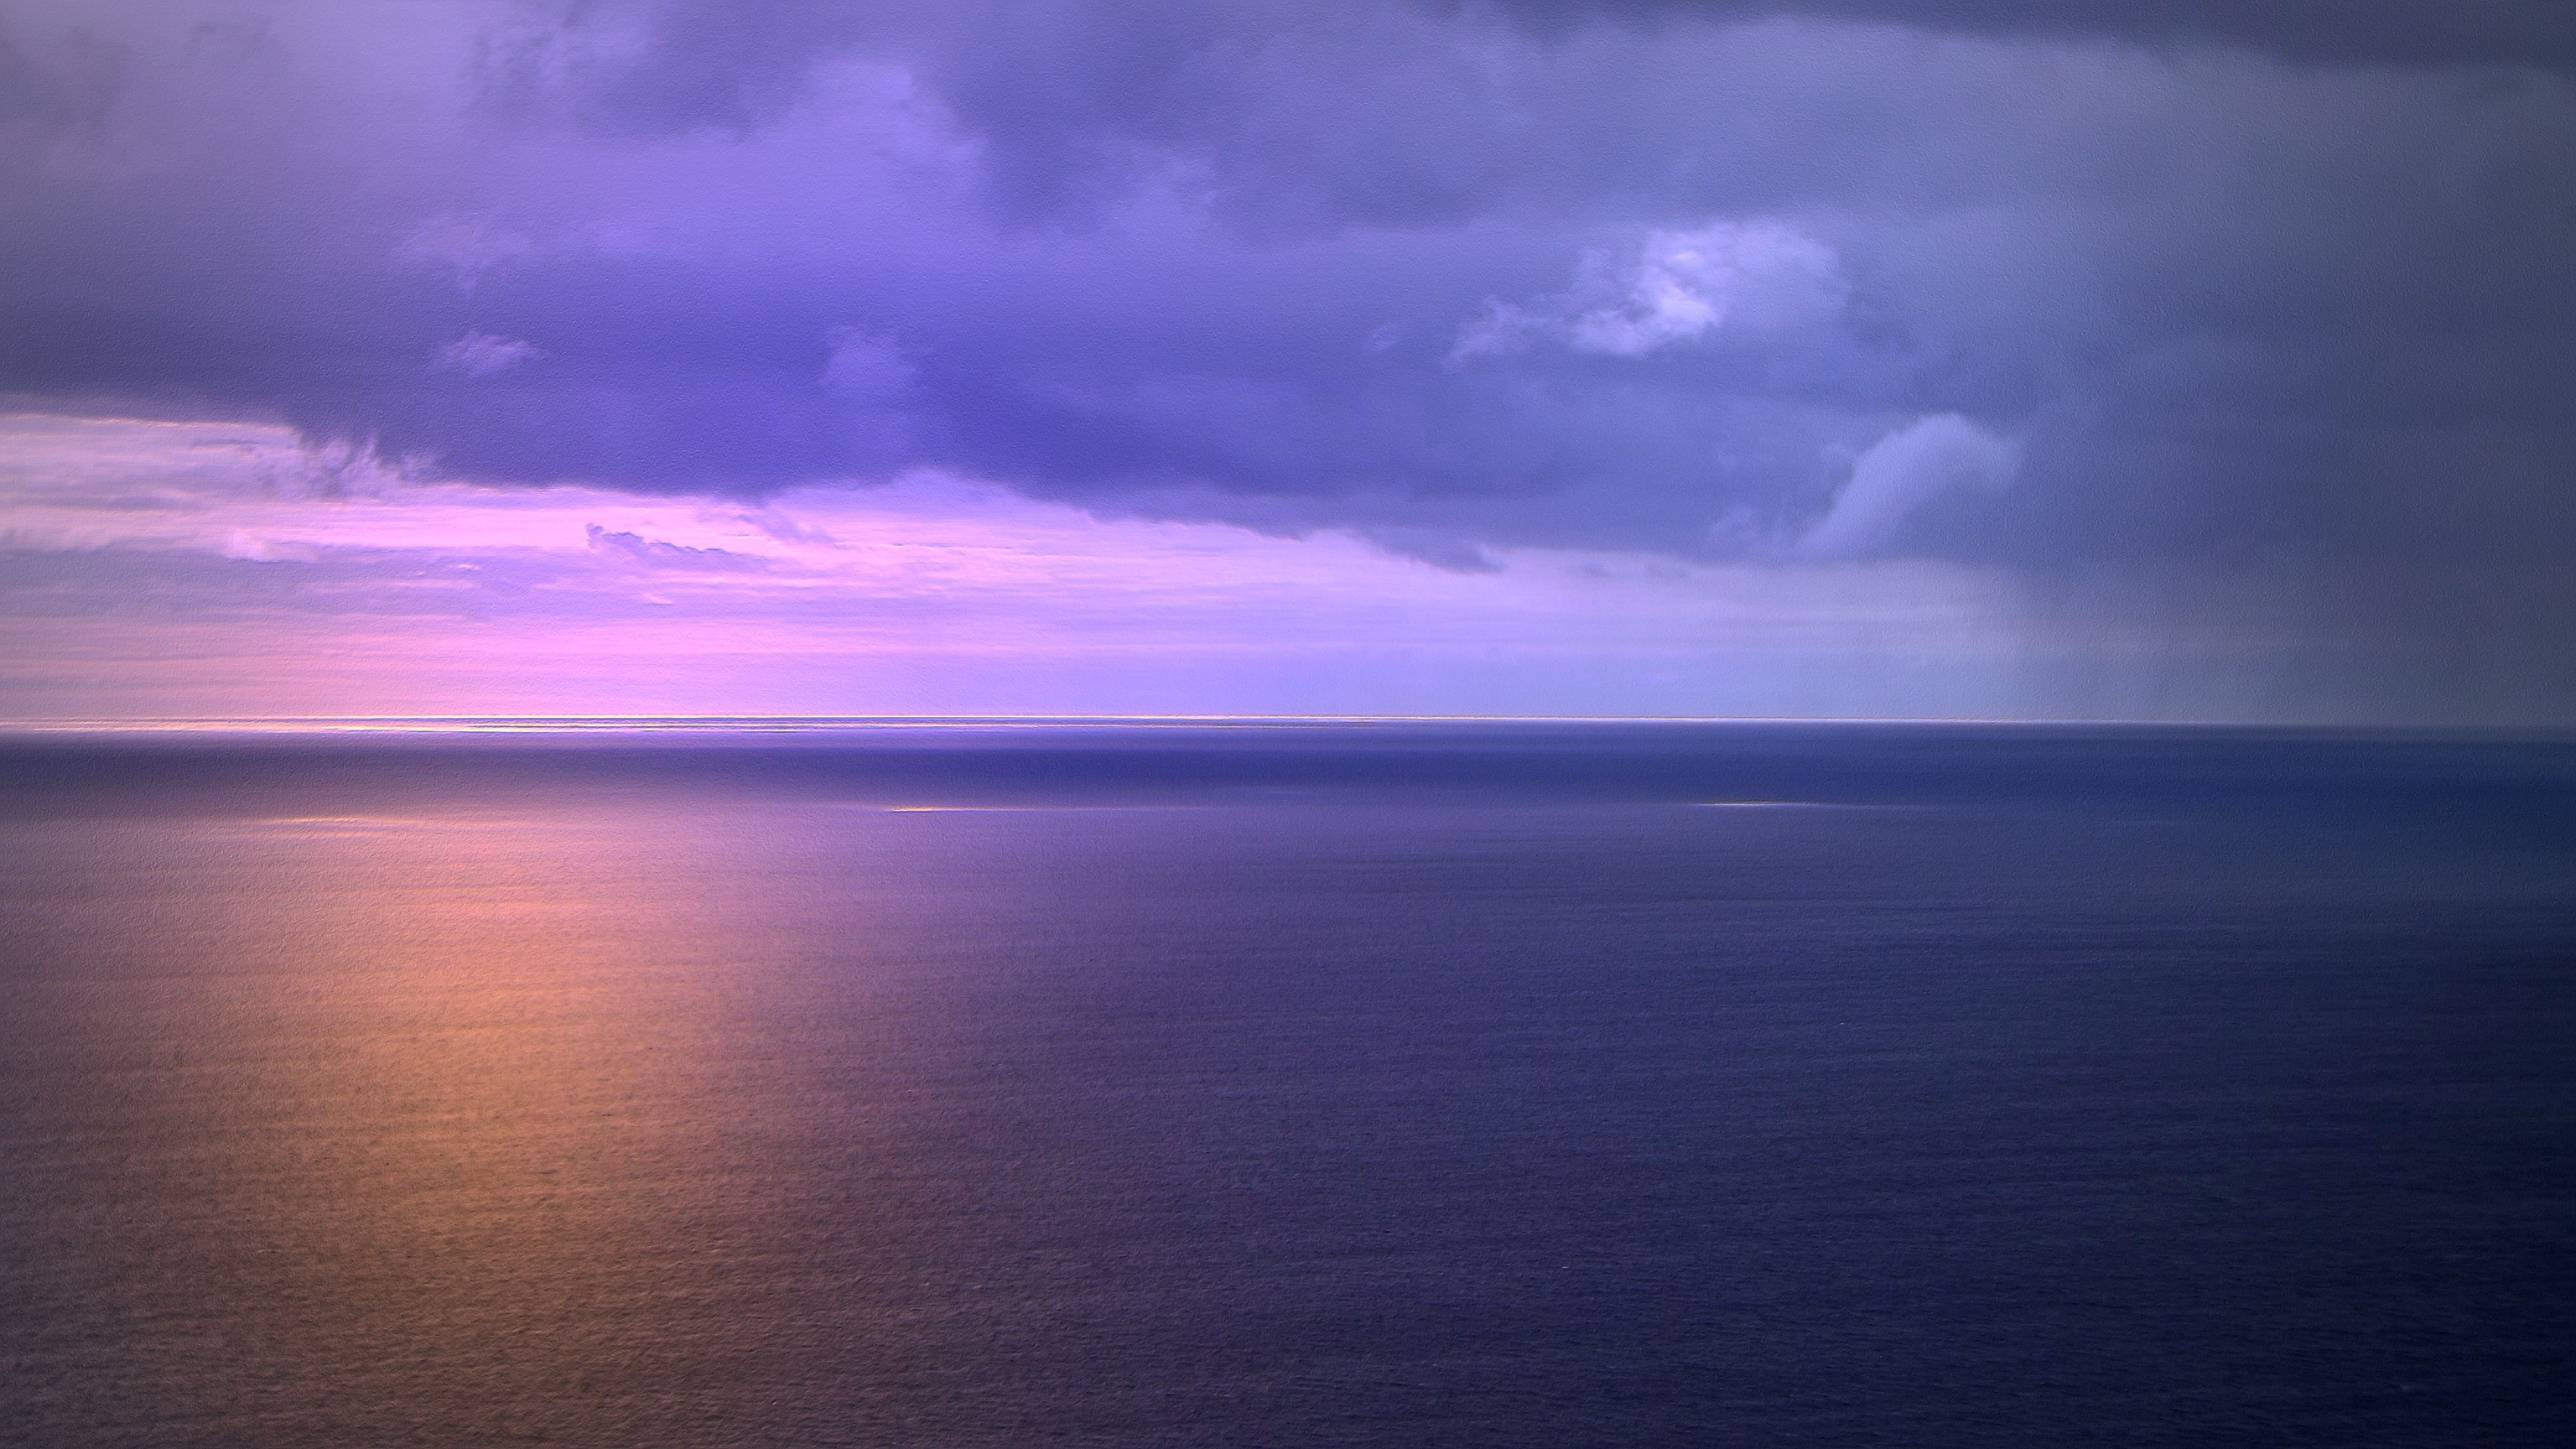 Scenic view of dramatic sky over sea photo